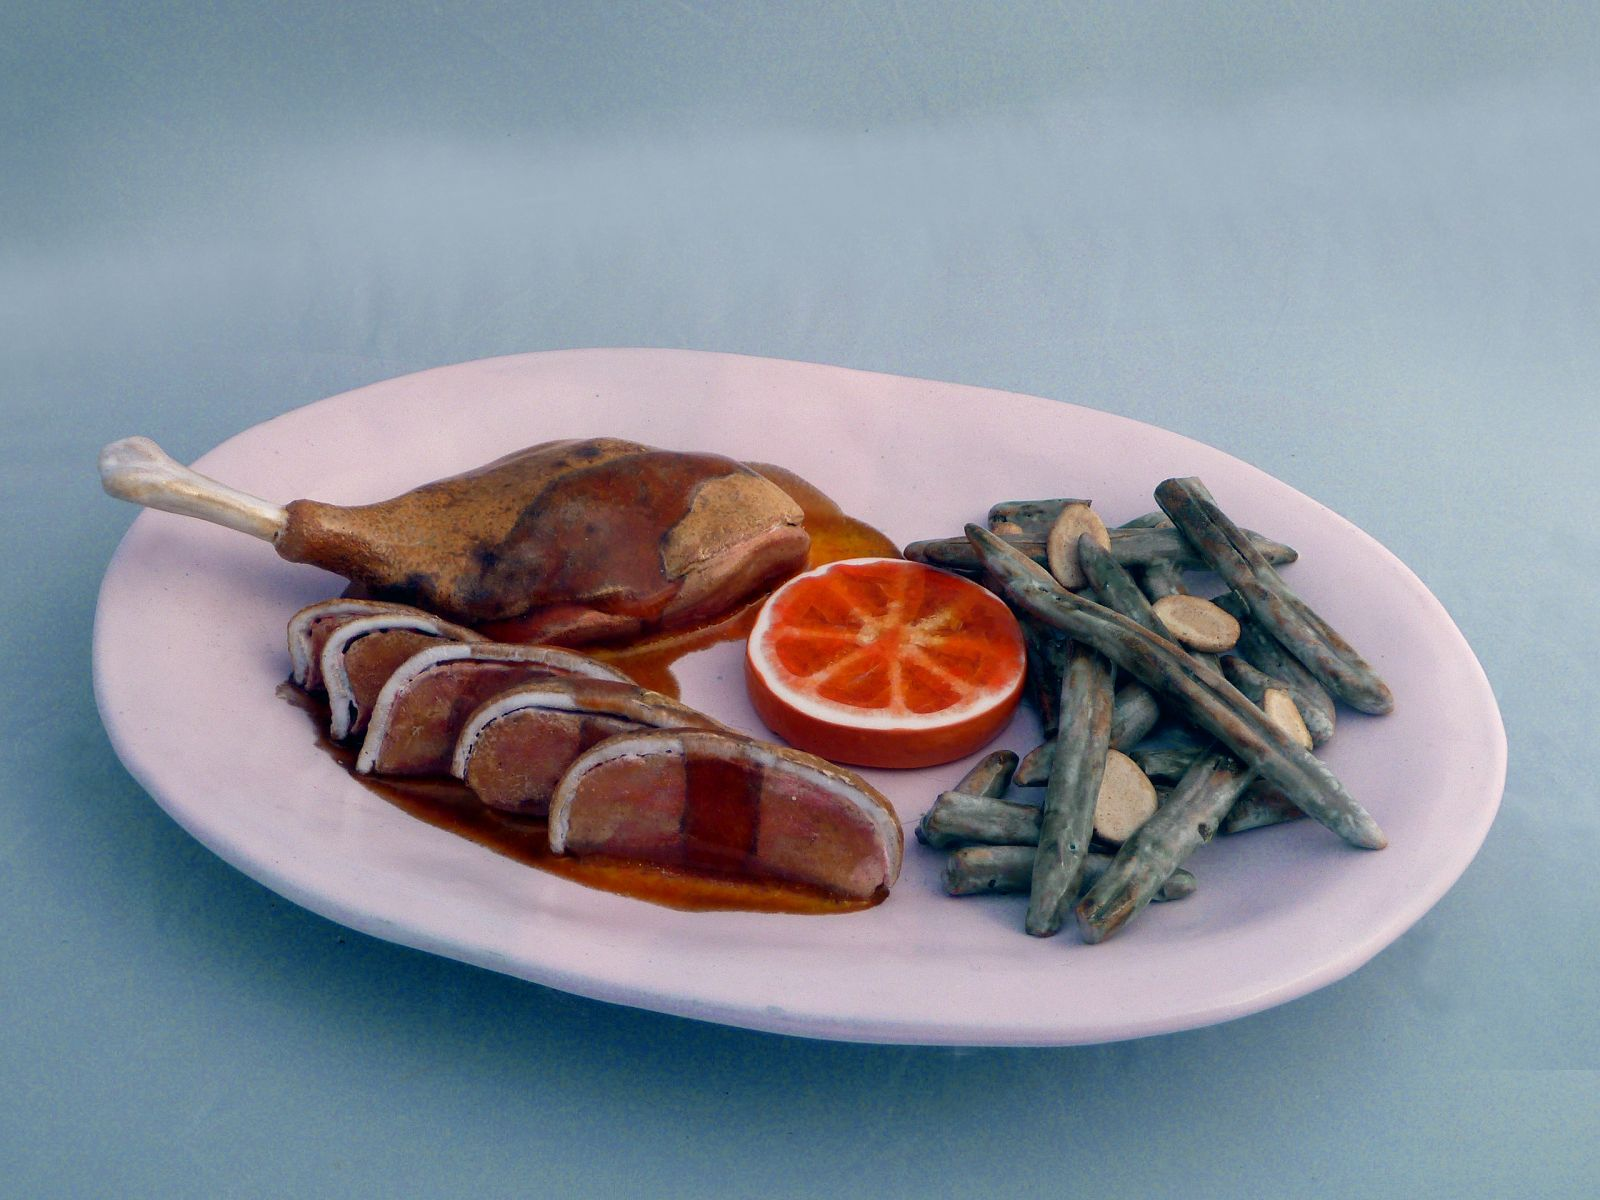 Return Of The Duck in Ornage Sauce with Haricots Verts Amandine